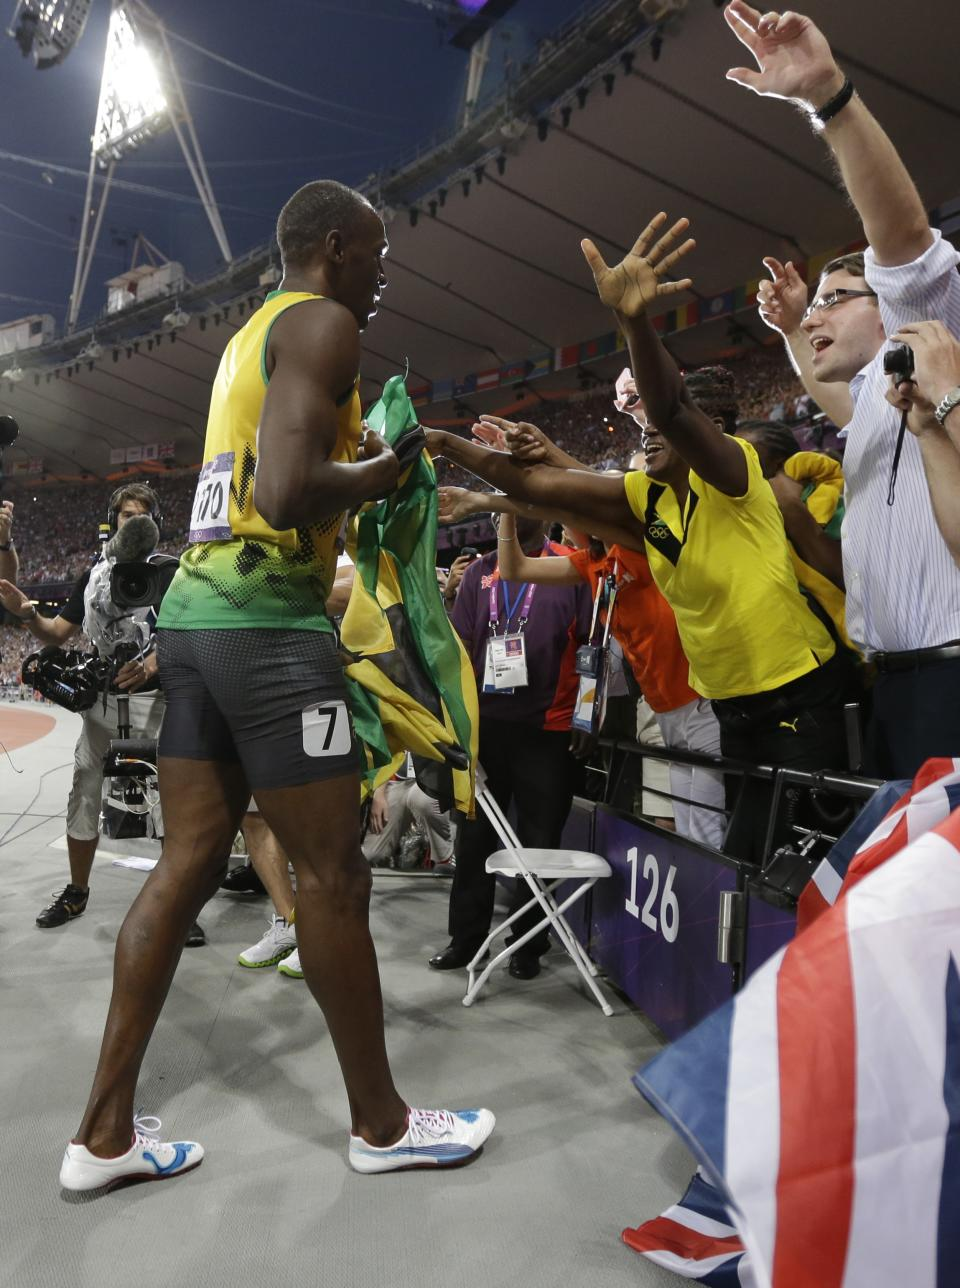 Jamaica's Usain Bolt celebrates winning the men's 200-meter final during the athletics in the Olympic Stadium at the 2012 Summer Olympics, London, Thursday, Aug. 9, 2012. (AP Photo/Matt Rourke)